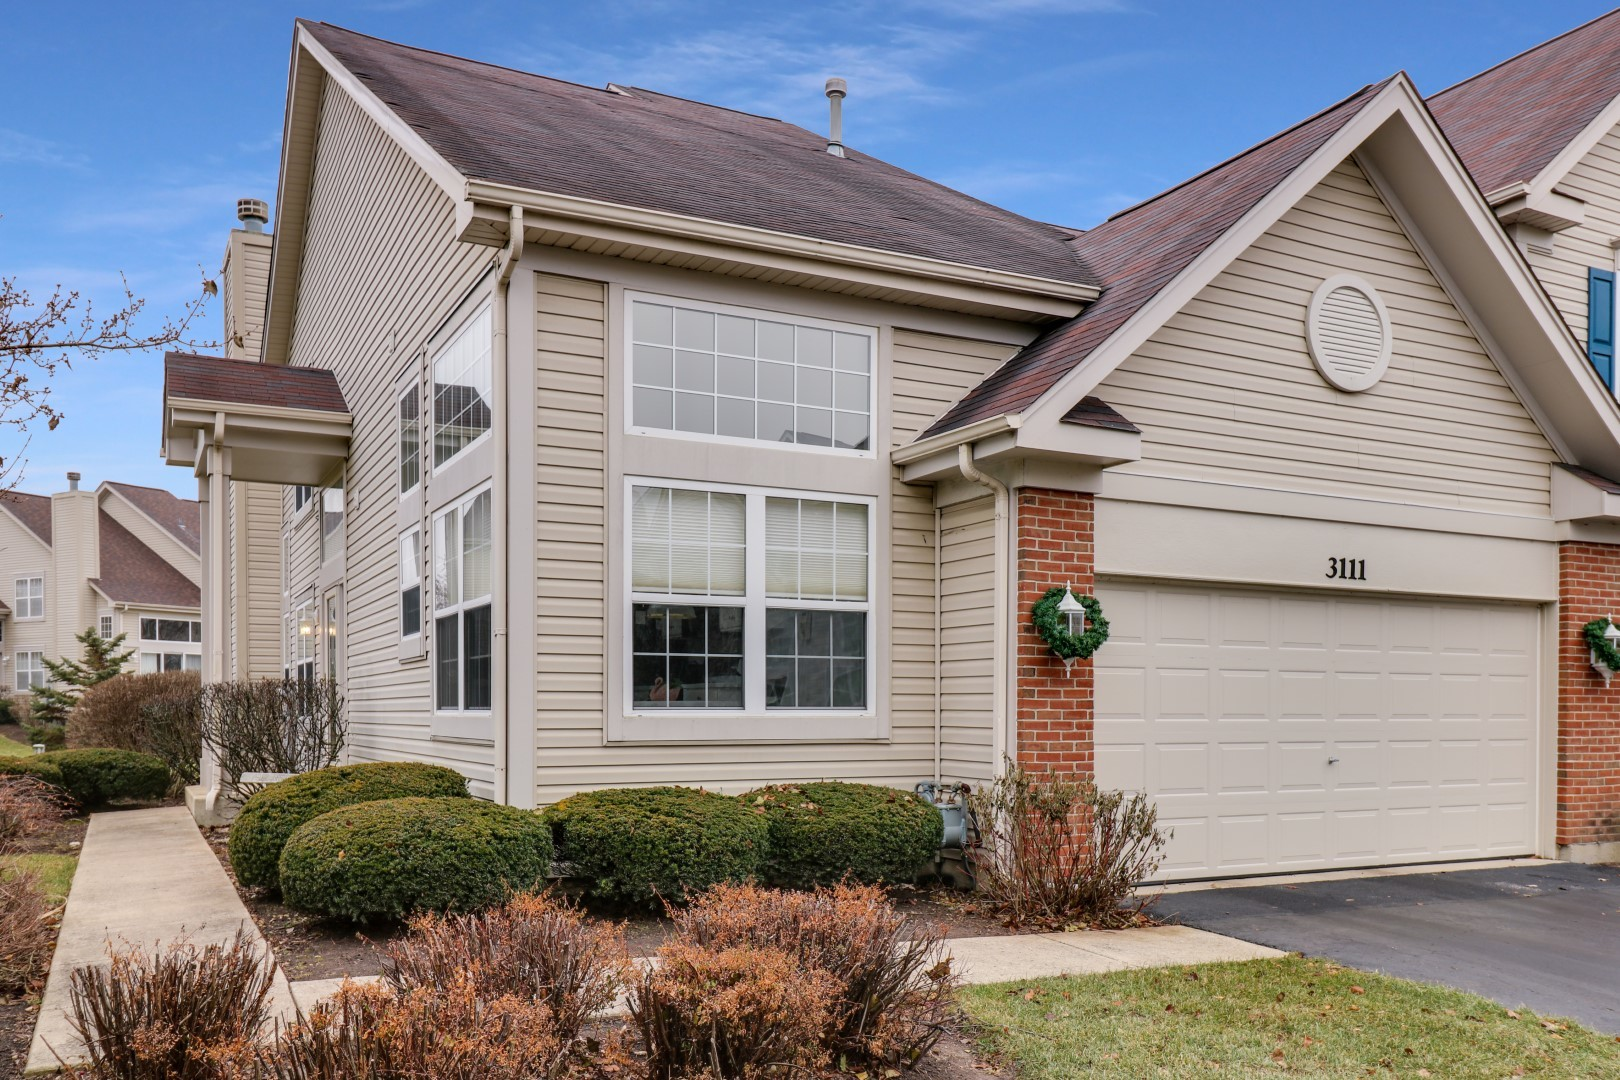 Photo for 3111 Raphael Court, St. Charles, IL 60175 (MLS # 10594146)